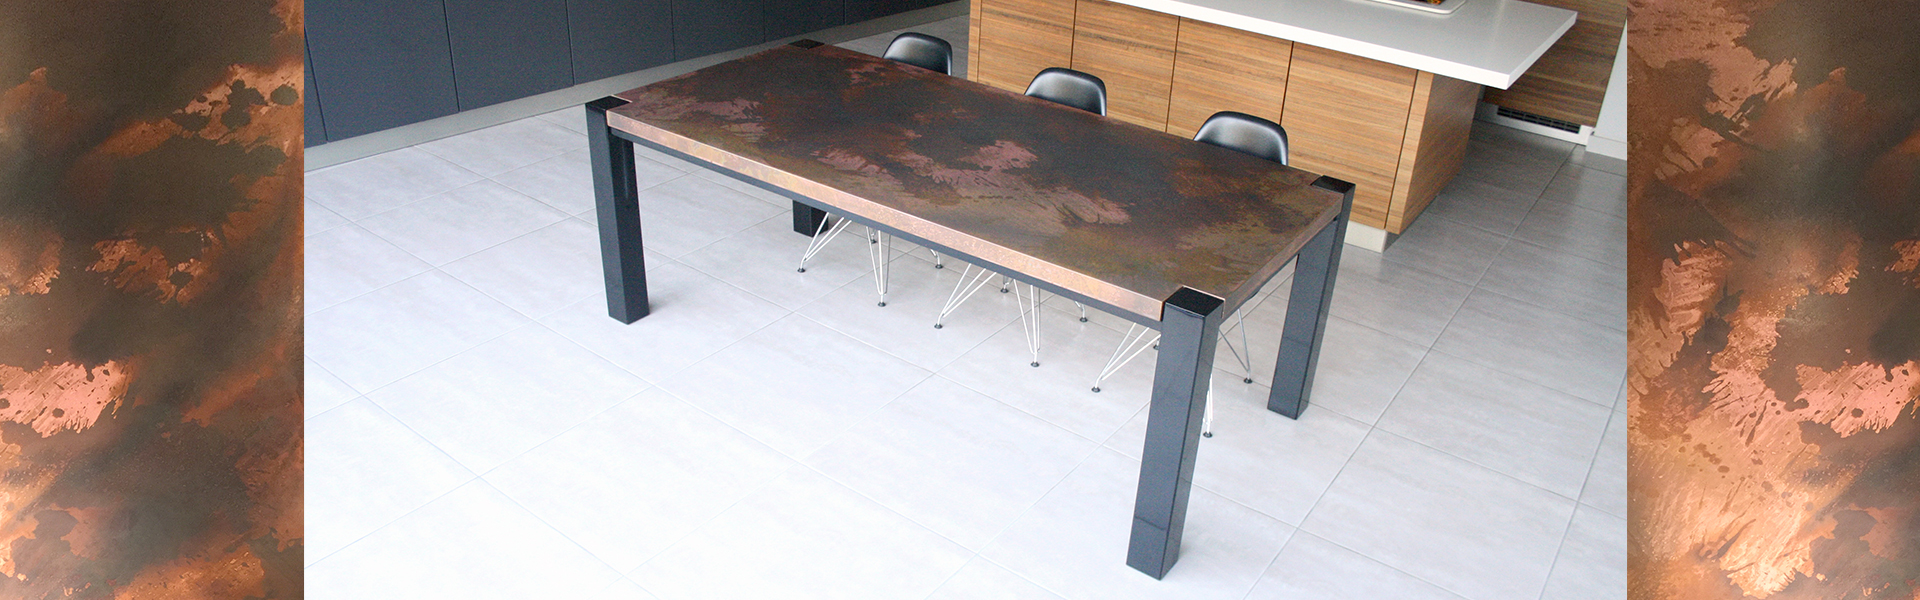 Trunk Table design in Distressed Copper and Black Steel frame